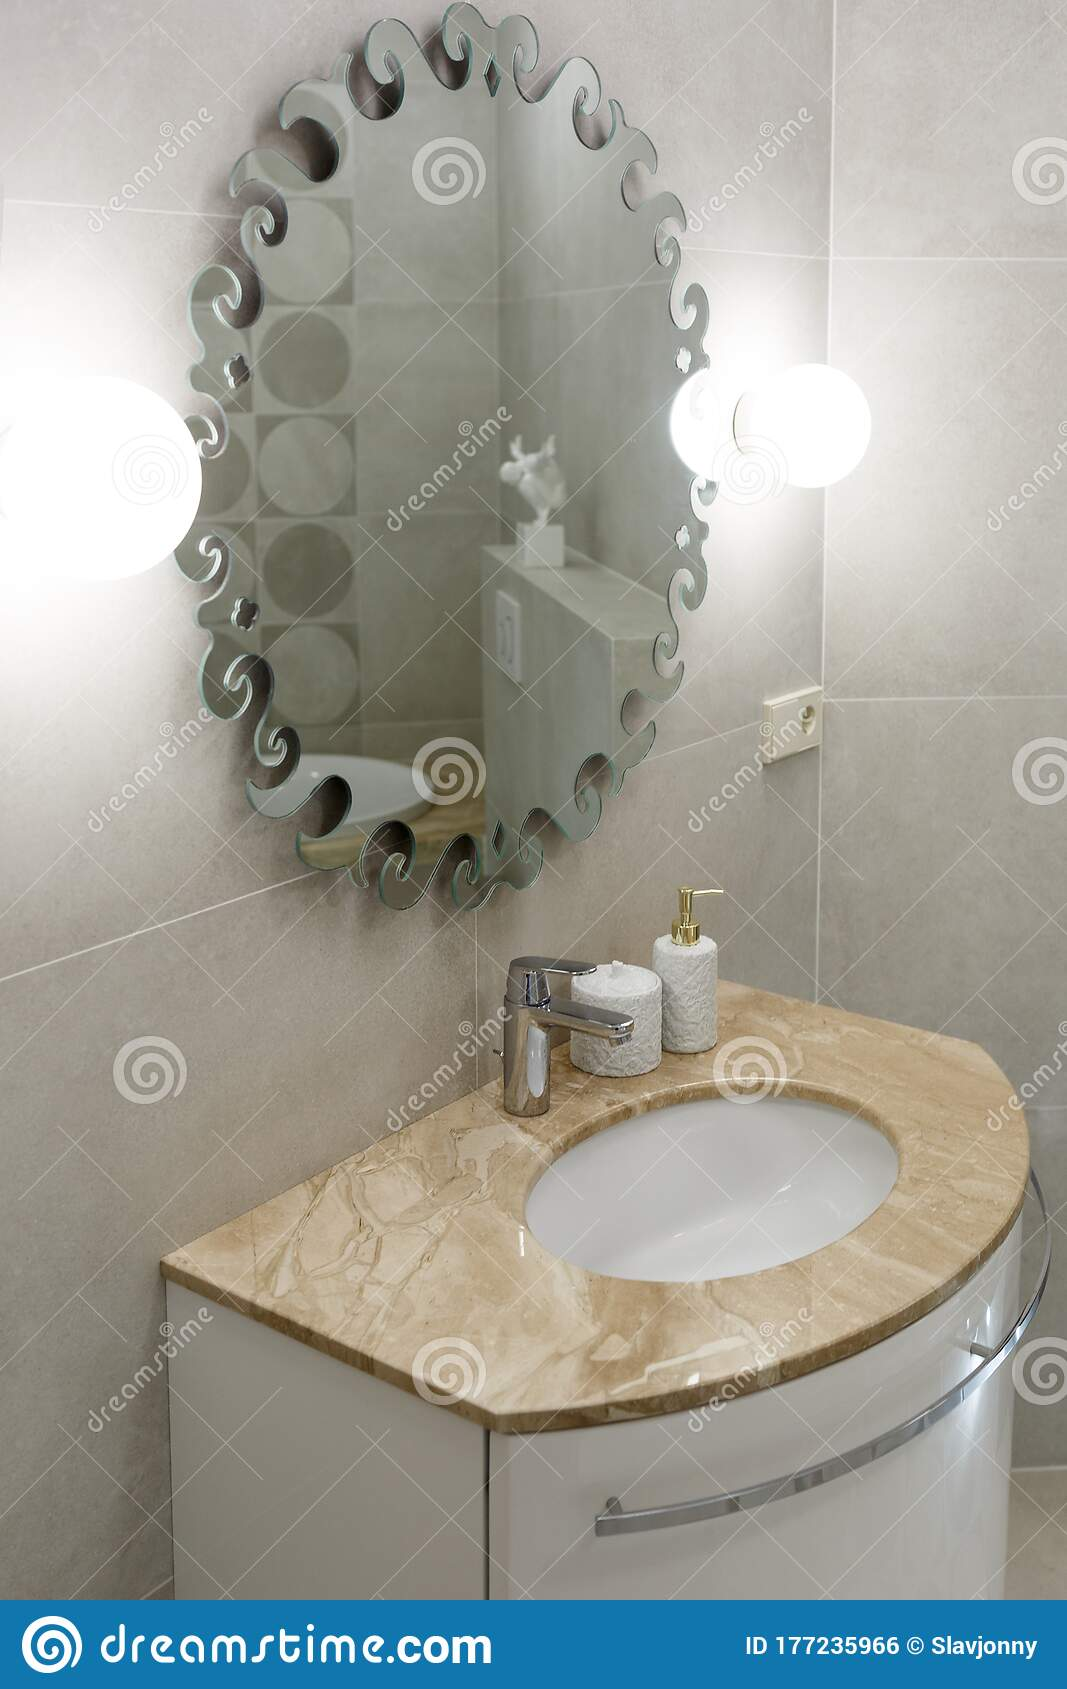 Marble Sink Chrome Faucet Large Mirror And Bathroom Accessories Modern Bathroom Design Stock Photo Image Of Interior Decor 177235966